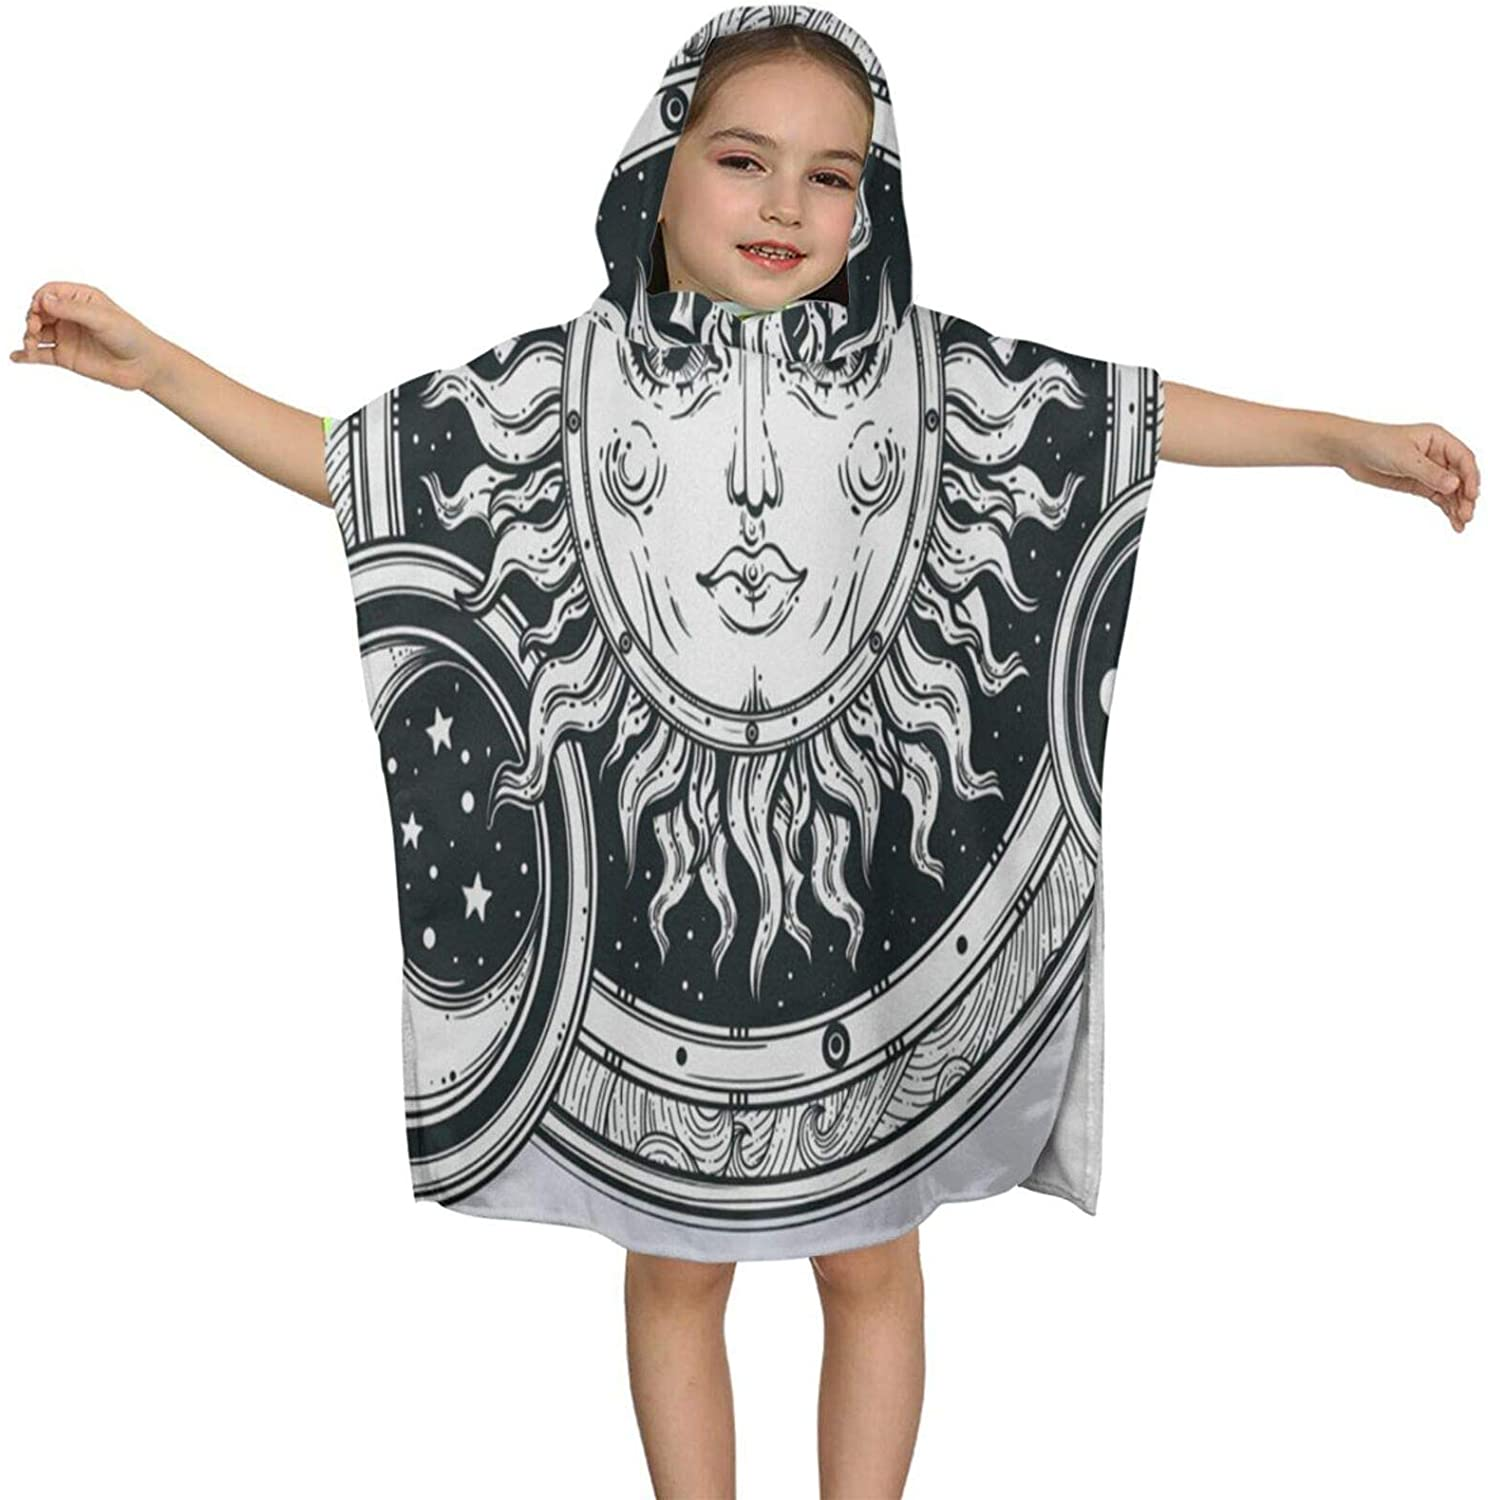 N\ A Hooded Bath Towels for Kids Girls Boys Vintage Hand-Draw Sun Black and White Microfiber Soft Bathroom Towel Wrap Baby Toddler Beach Pool Swim Bathing Towels Absorbent Bathrobes Cover Up Cape